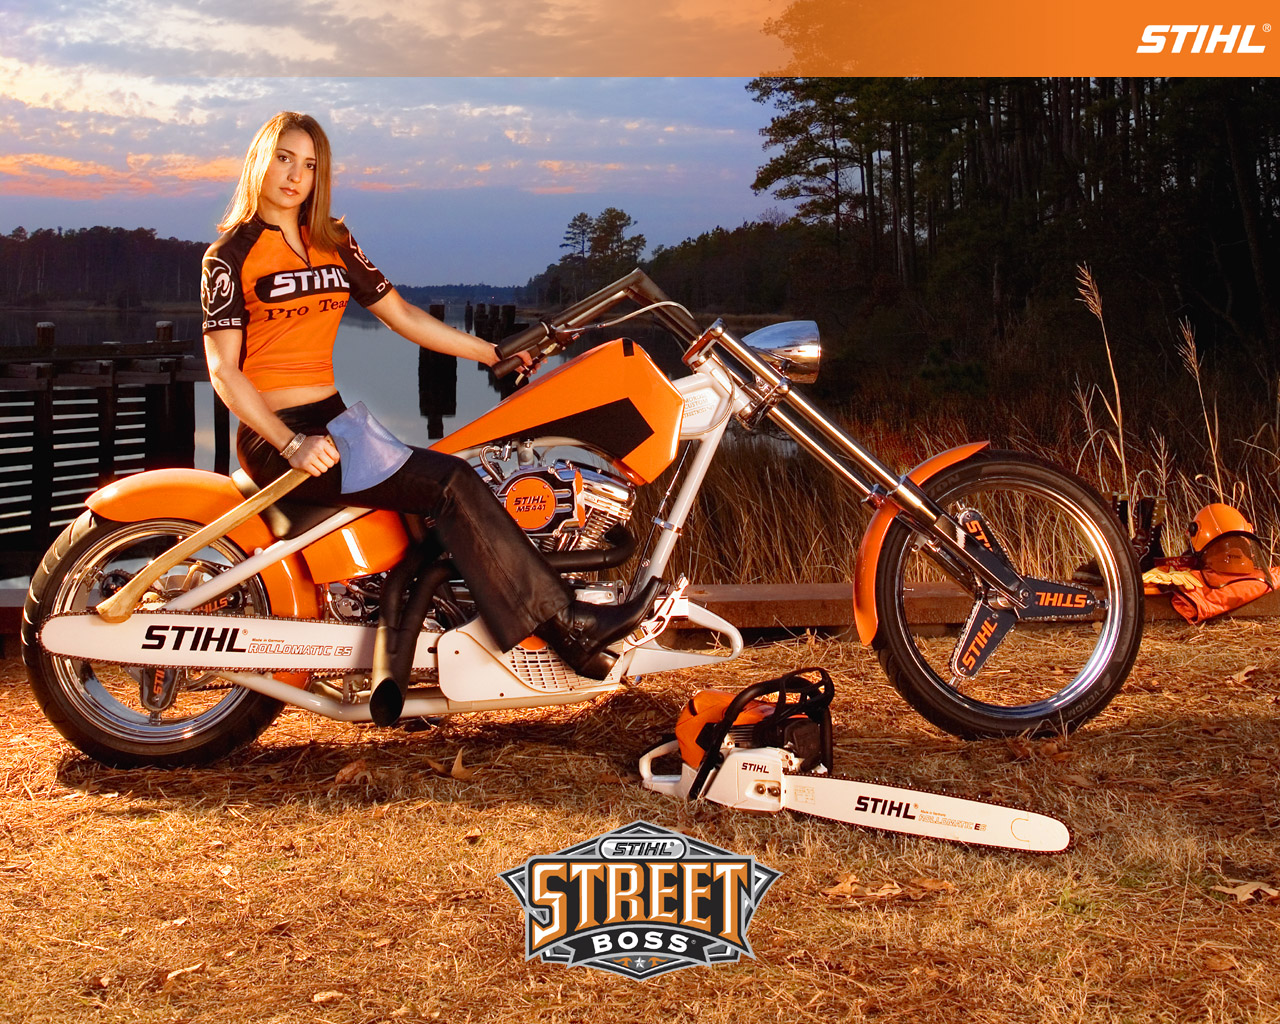 download STIHL wallpaper 12 1280jpg [1280x1024] for your 1280x1024